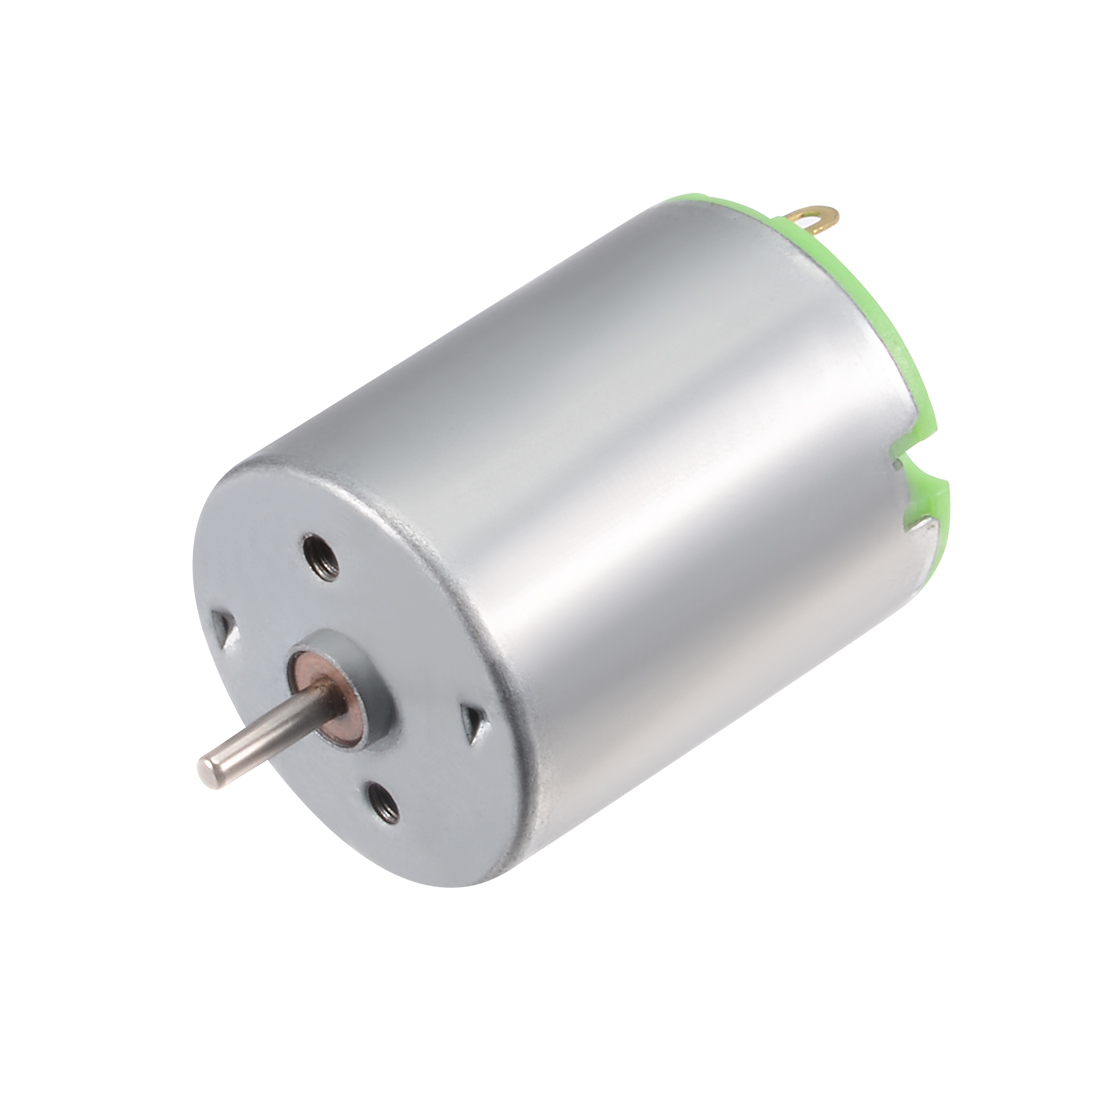 Small Motor DC 12V 6000 RPM High Speed Motor for DIY Hobby Toy Cars